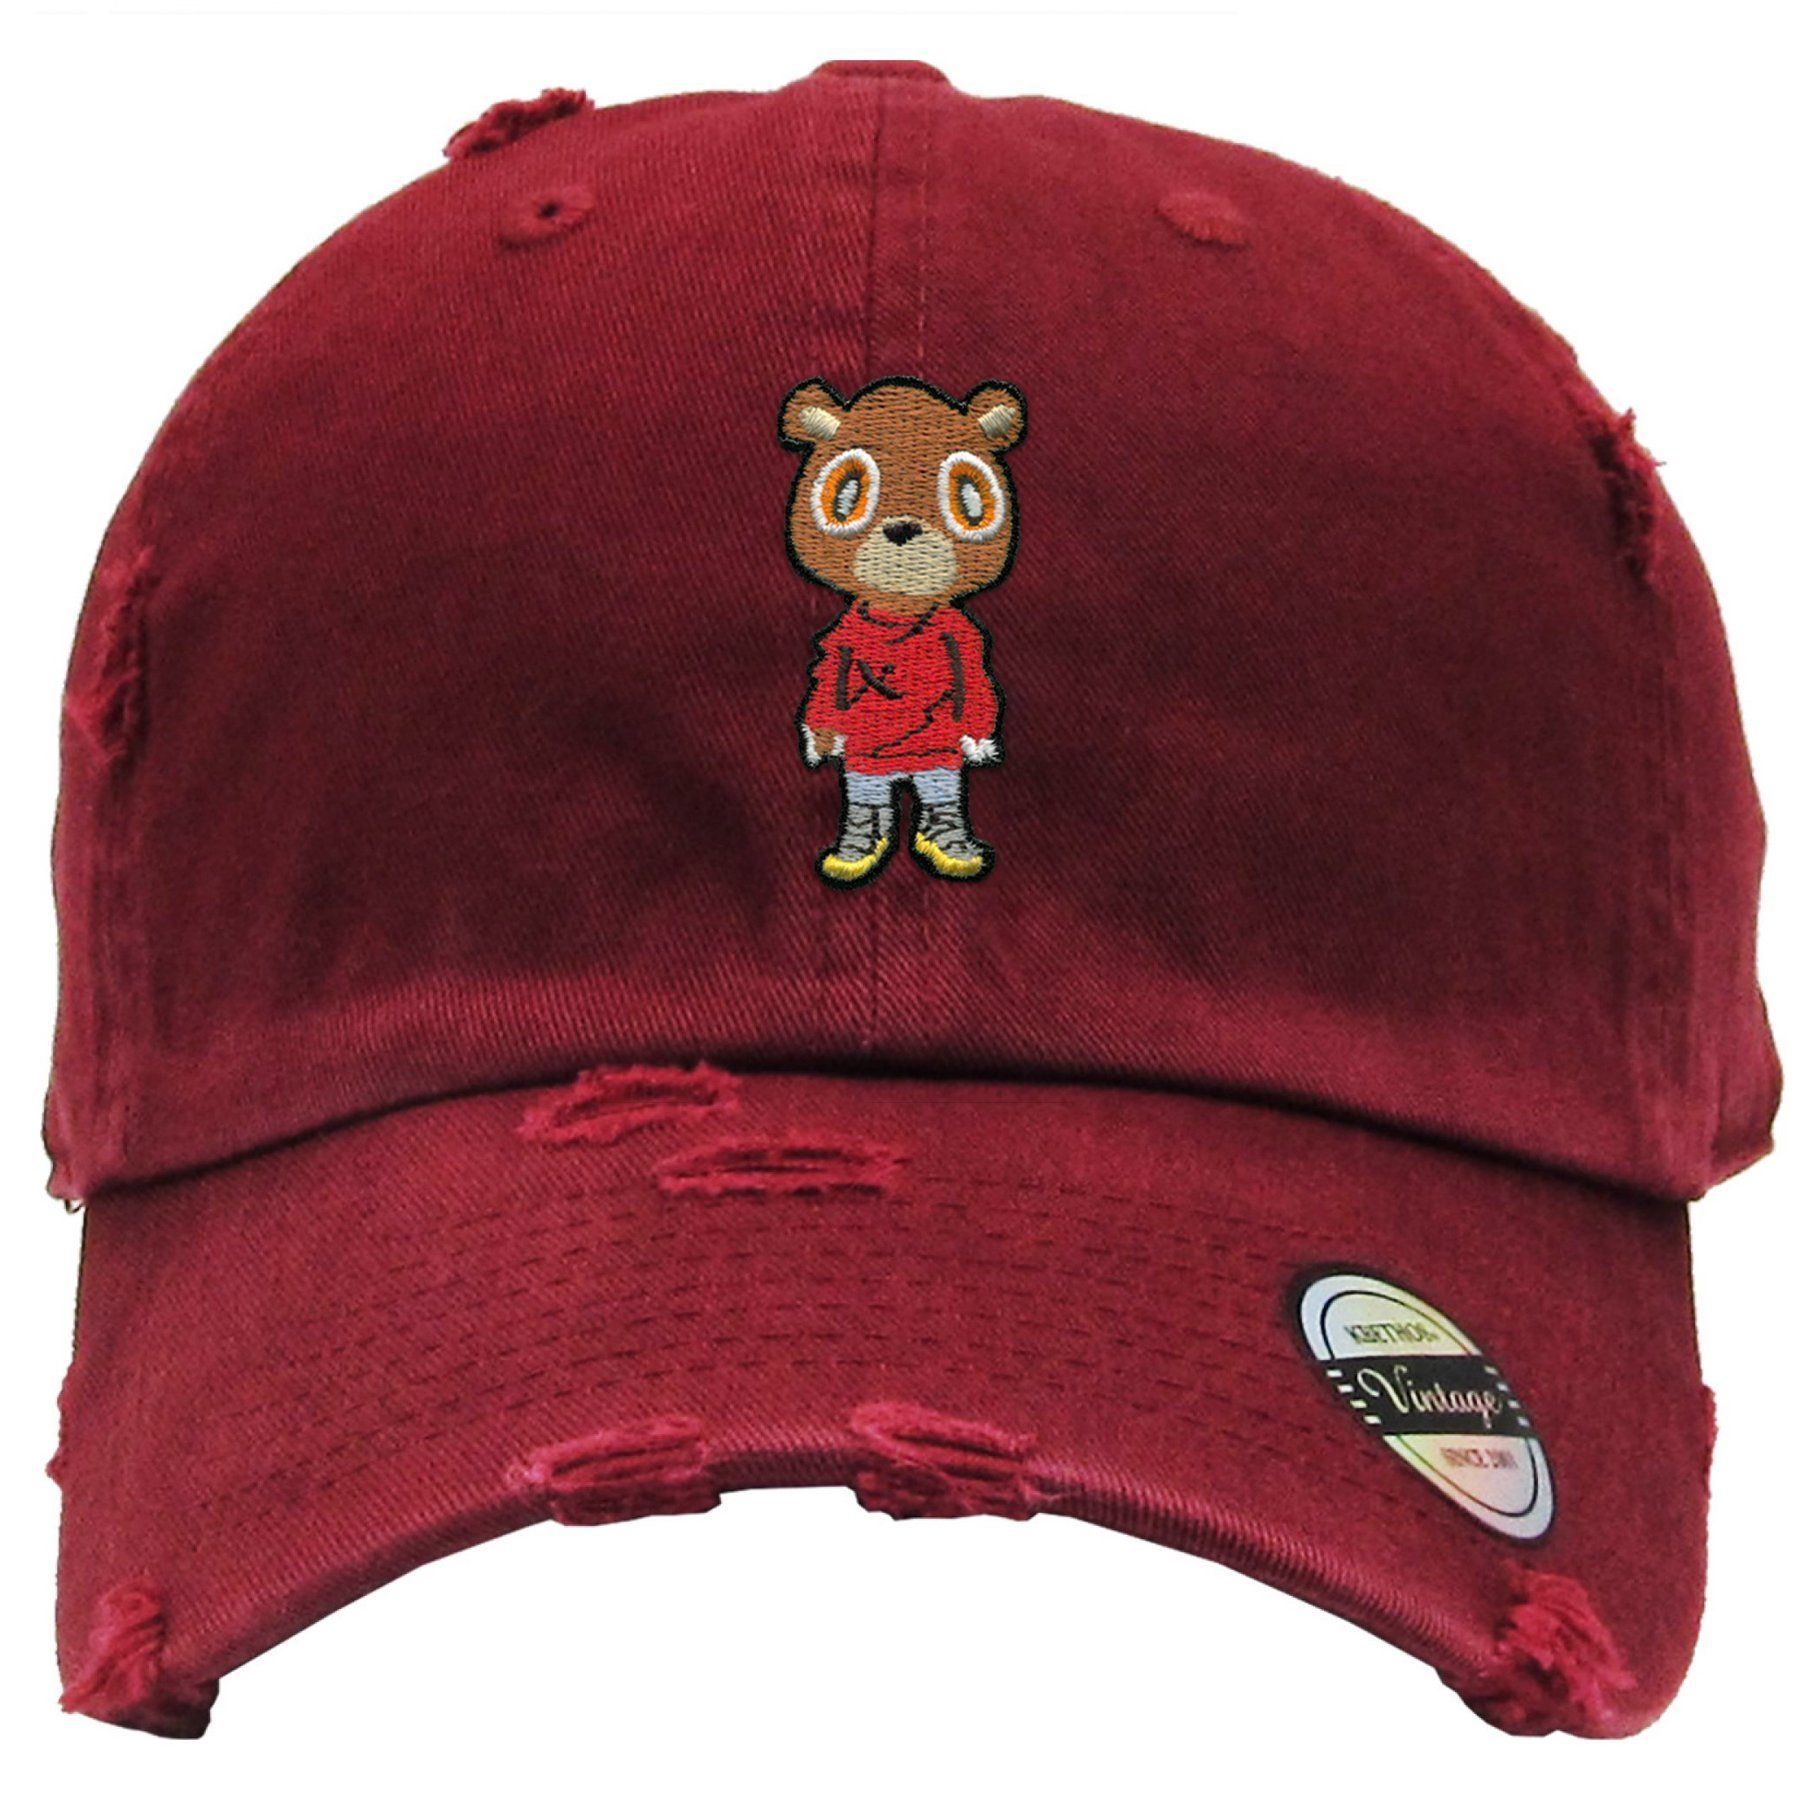 New Red Distressed THE COOL BEAR DAD Hat Snapback Strapback CAP